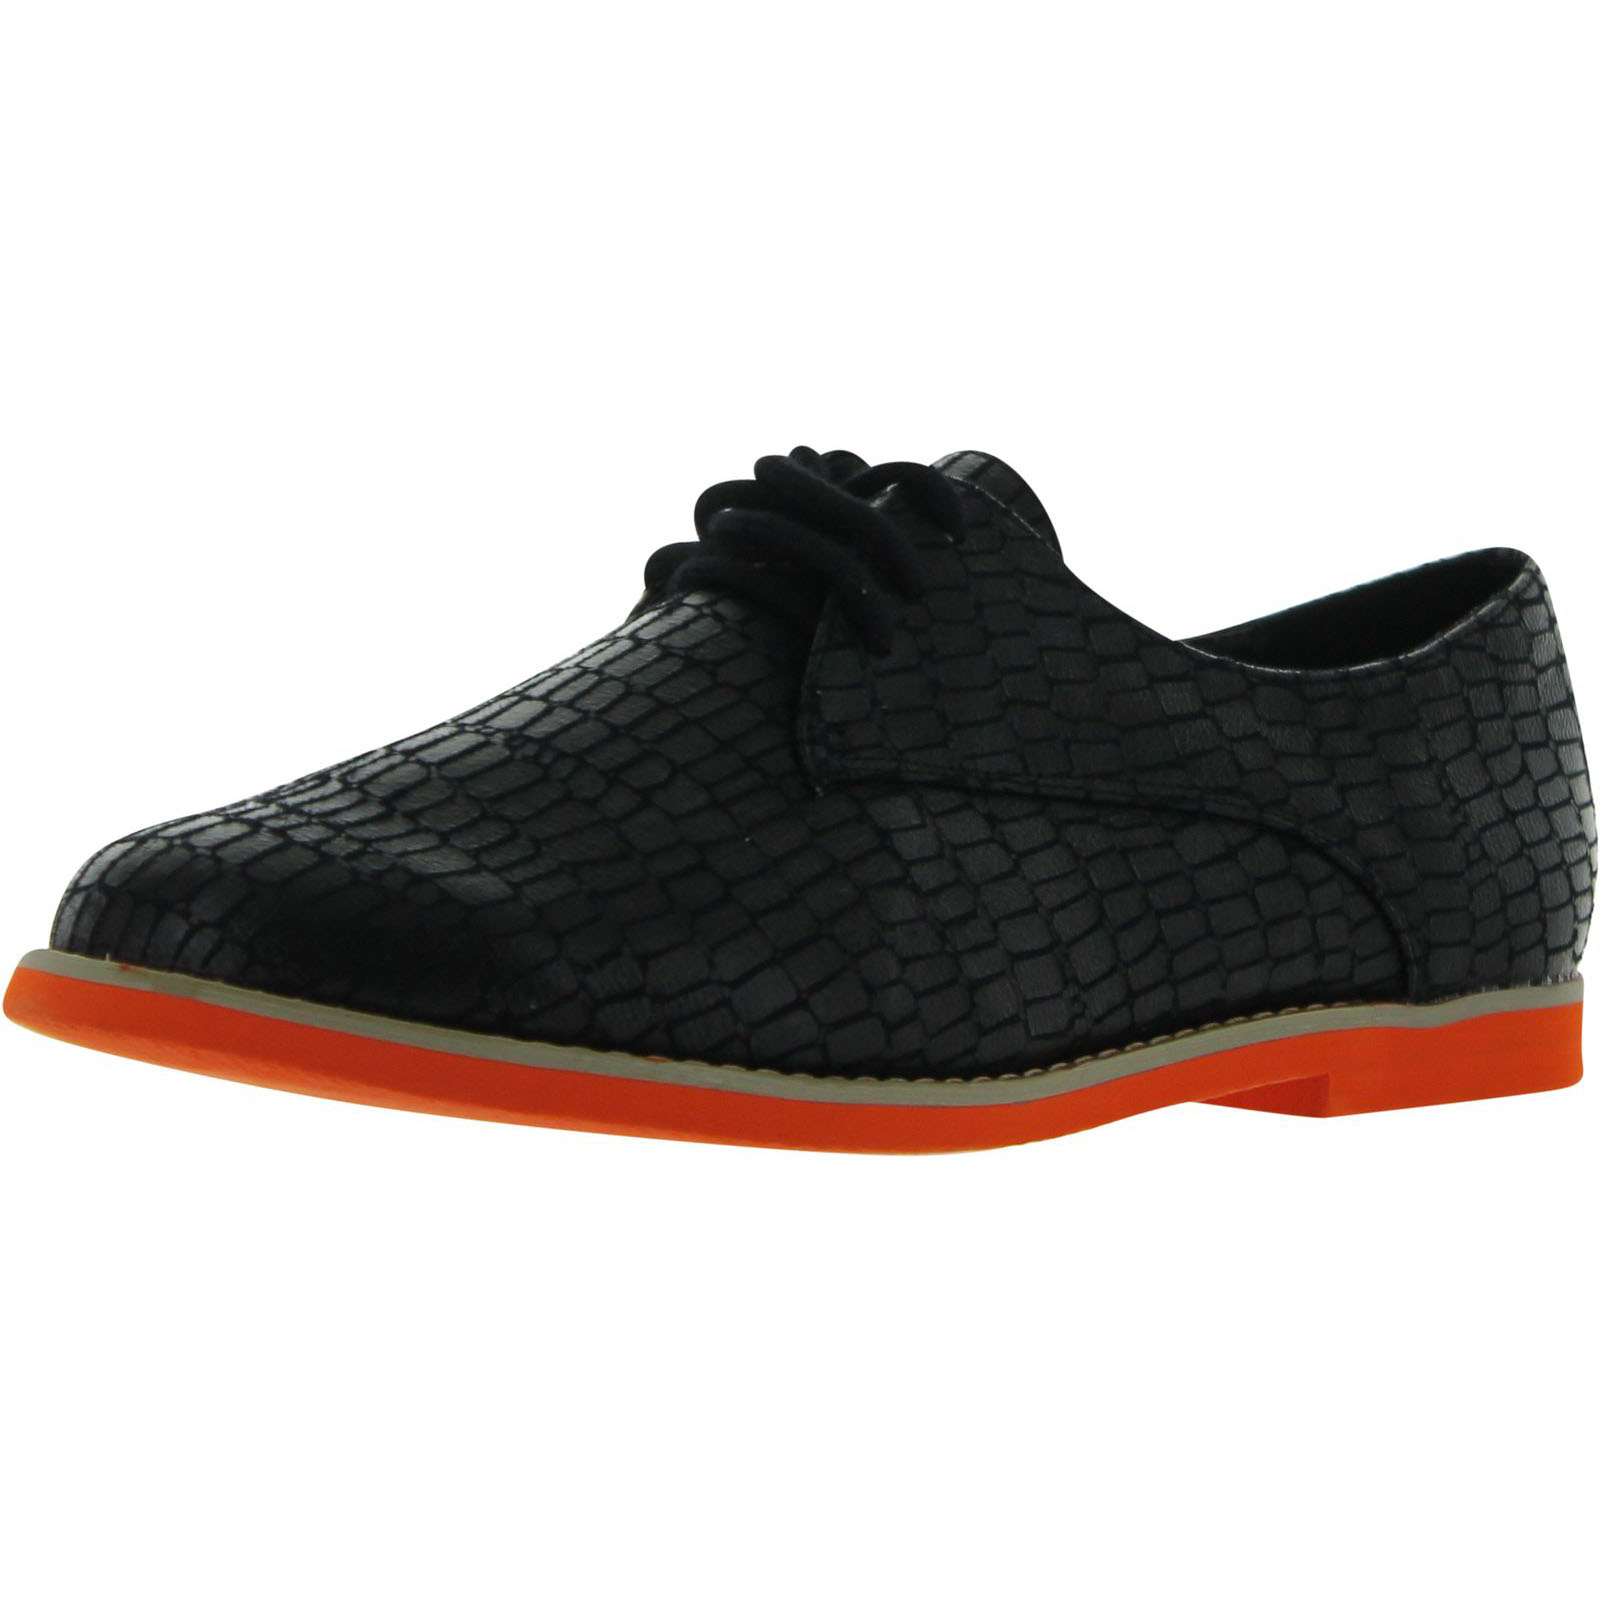 Nomad Women's Links Oxford Shoes by Nomad